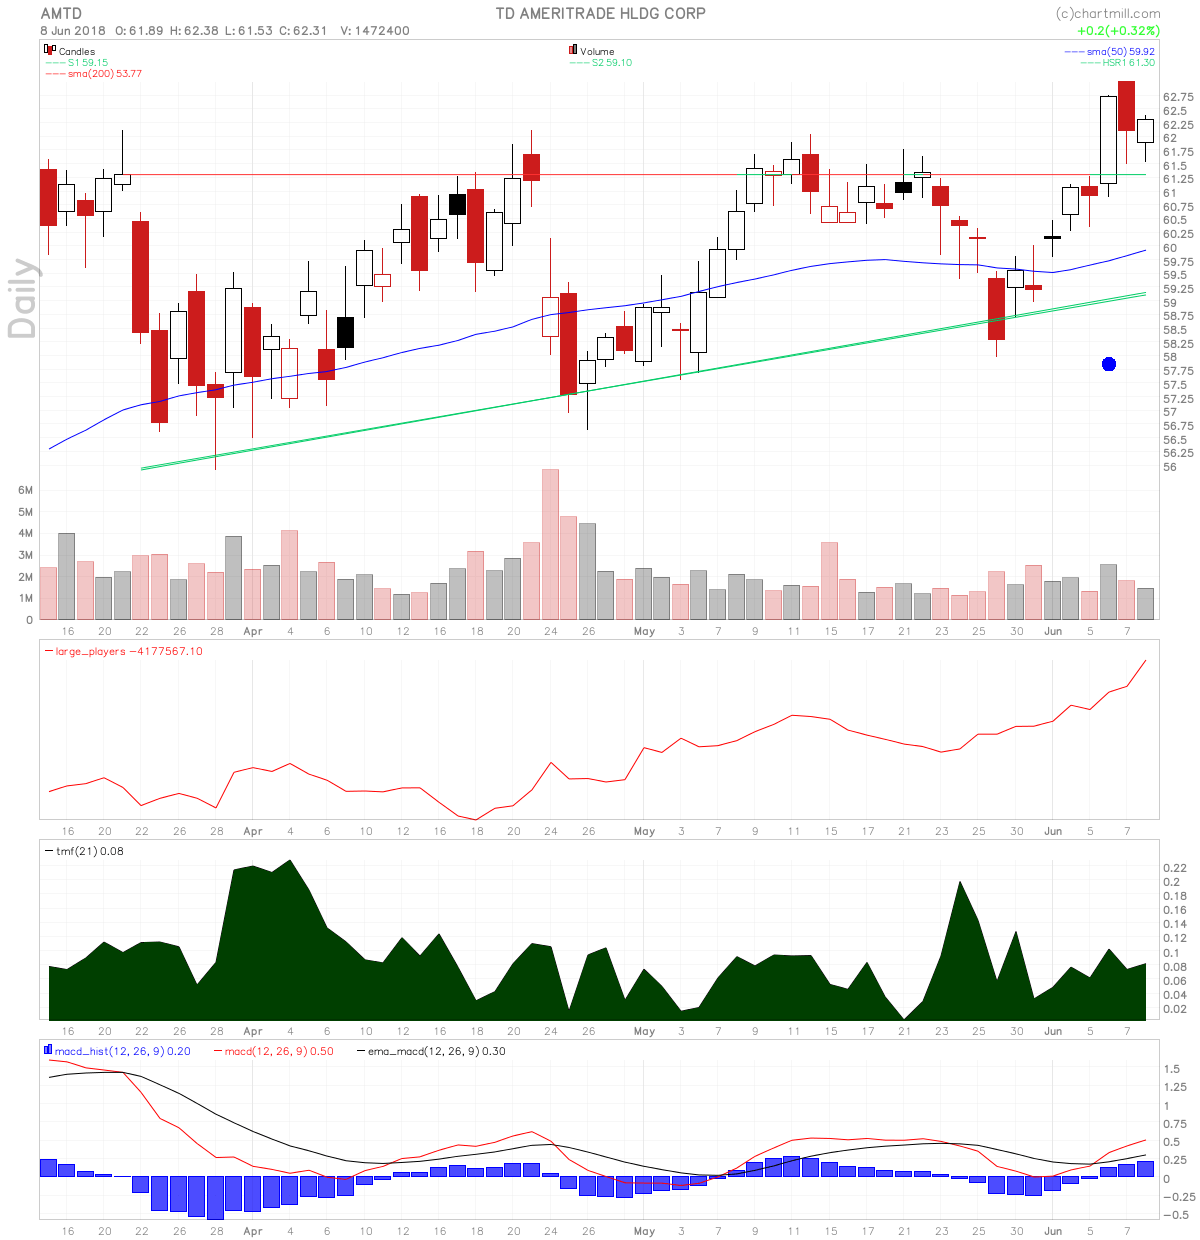 AMTD chart with surging large players volume